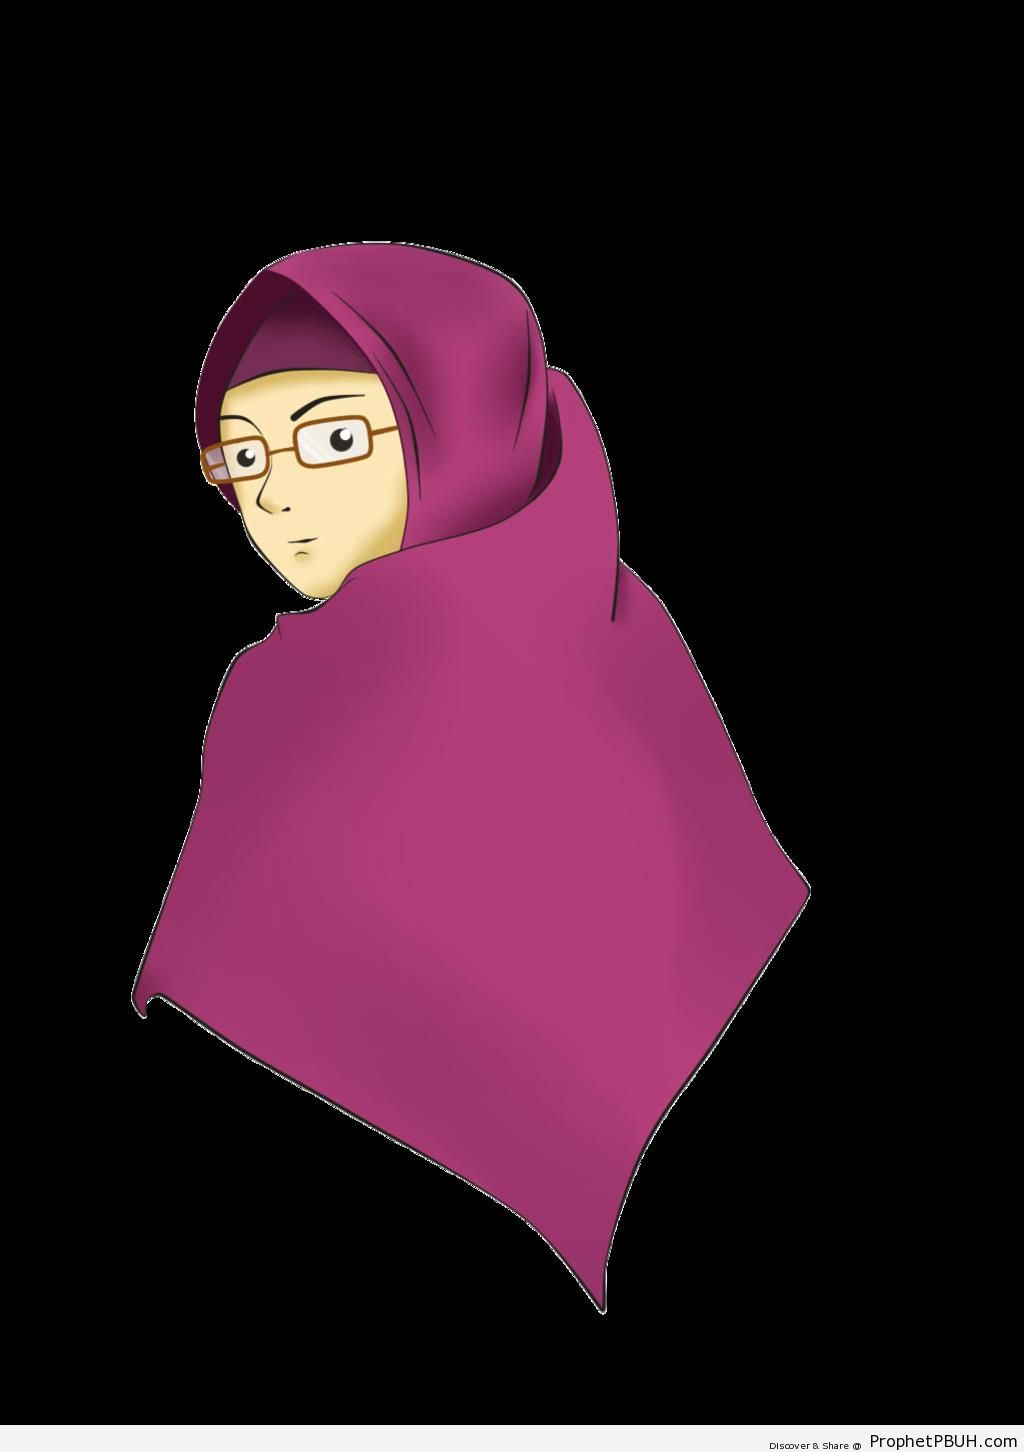 Muslimah Wearing Purple Hijab and Glasses - Drawings